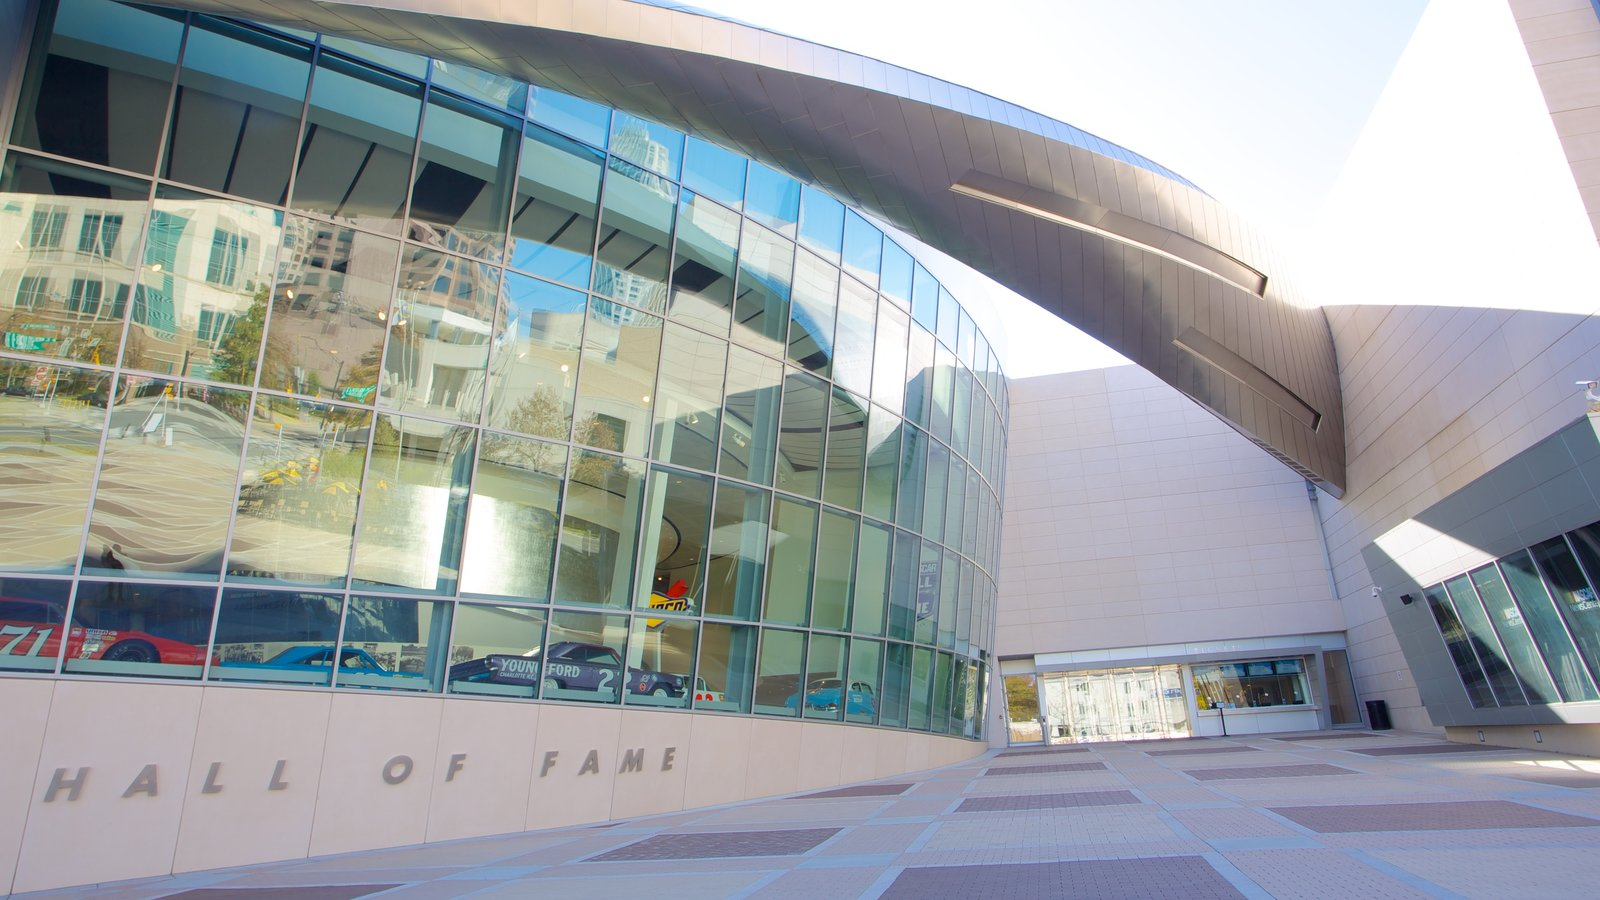 NASCAR Hall of Fame which includes modern architecture and a city